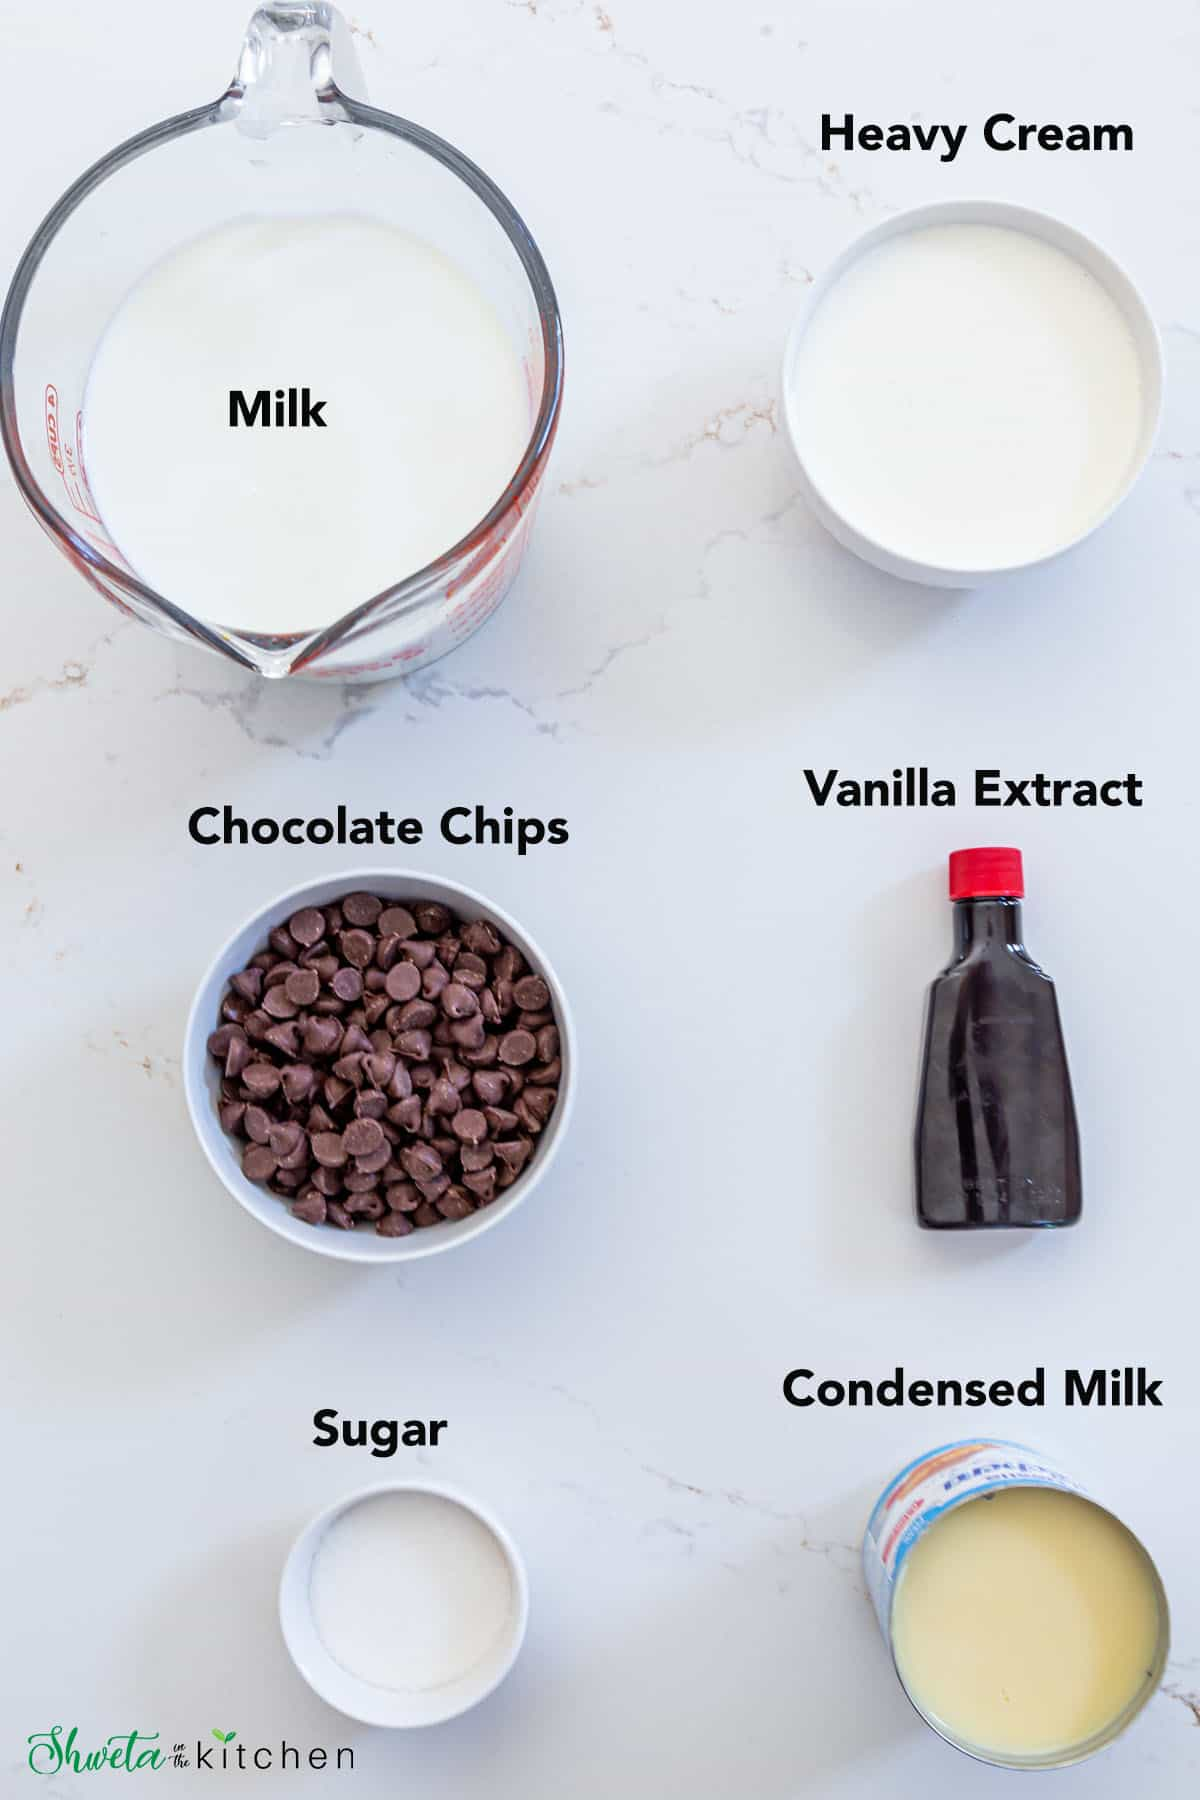 Hot Chocolate ingredients on a white surface